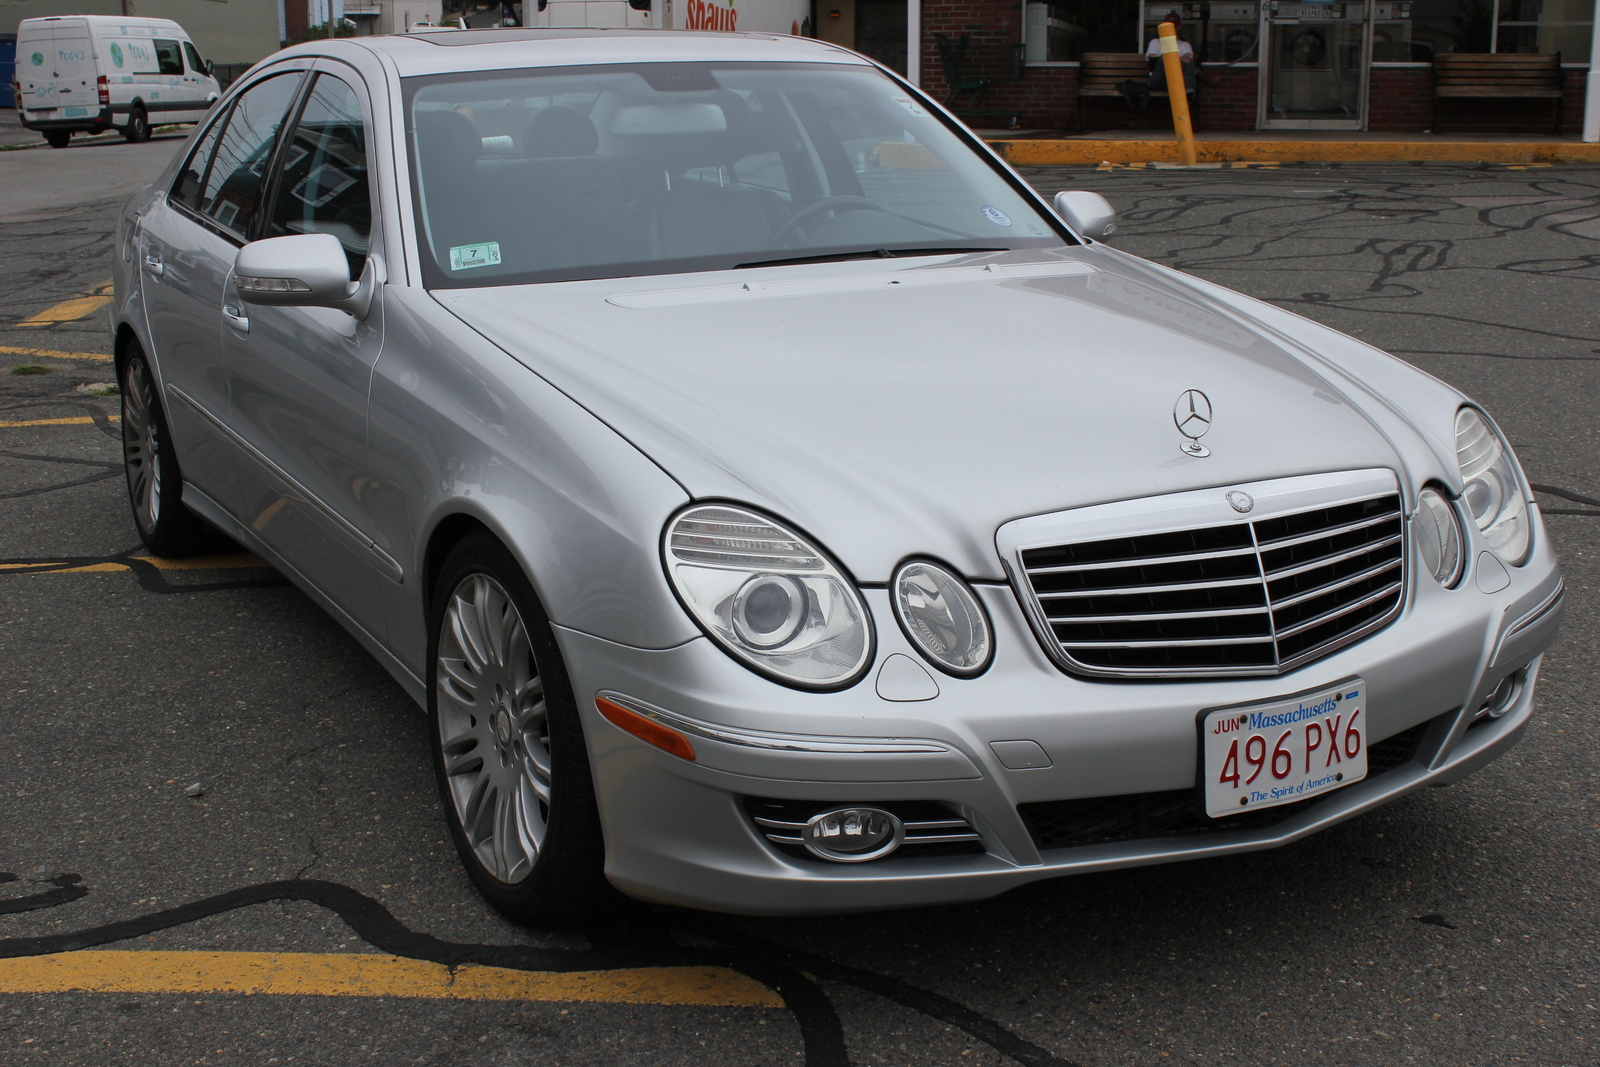 2008 mercedes benz e class pictures cargurus for 2008 mercedes benz e350 for sale